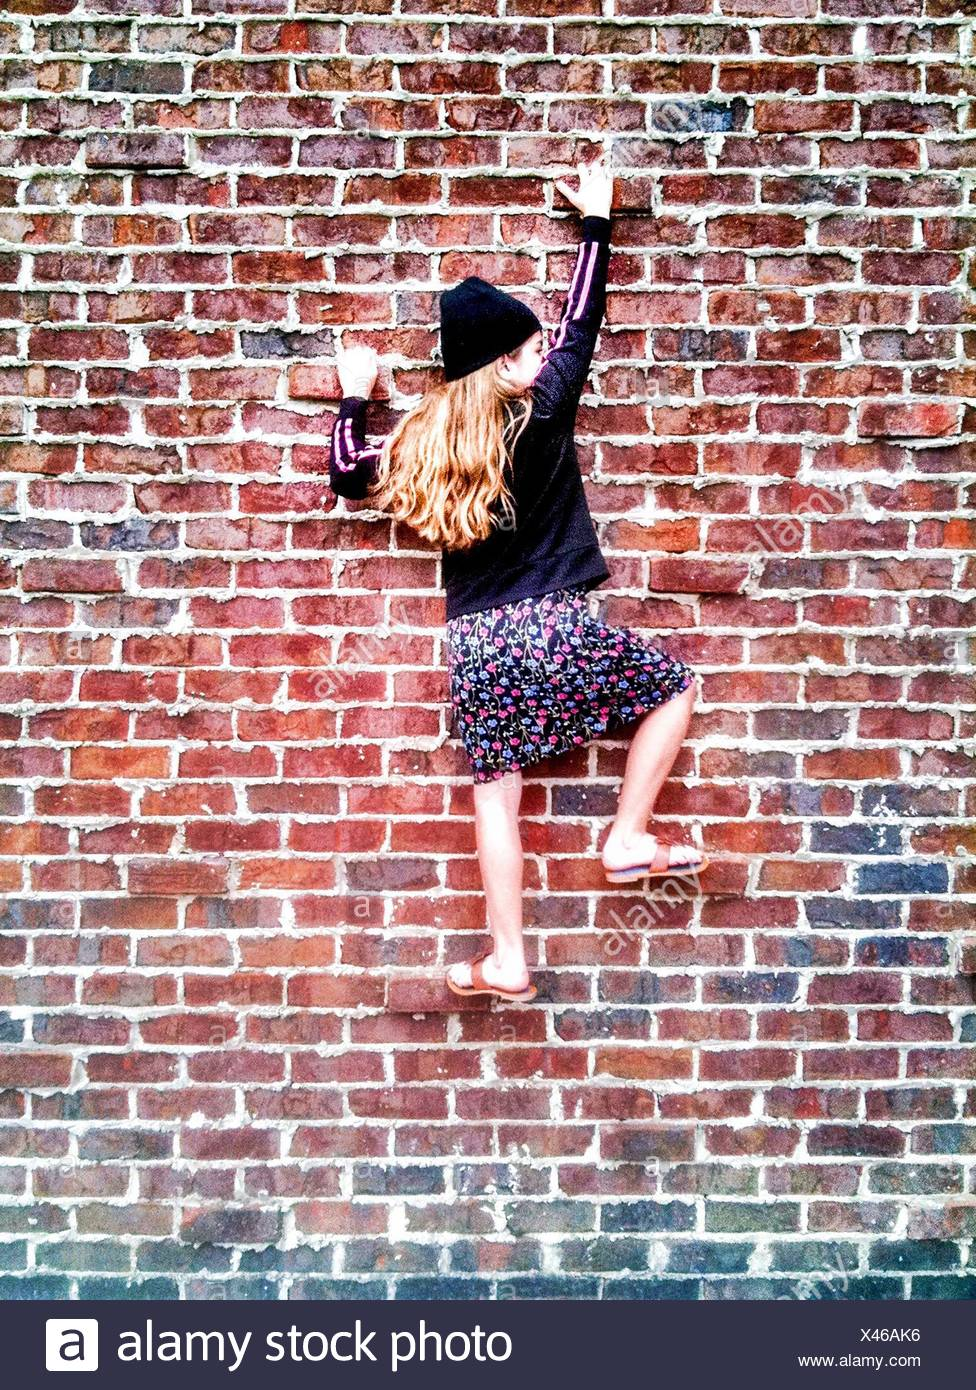 Full Length Rear View Of Girl Climbing On Brick Wall - Stock Image